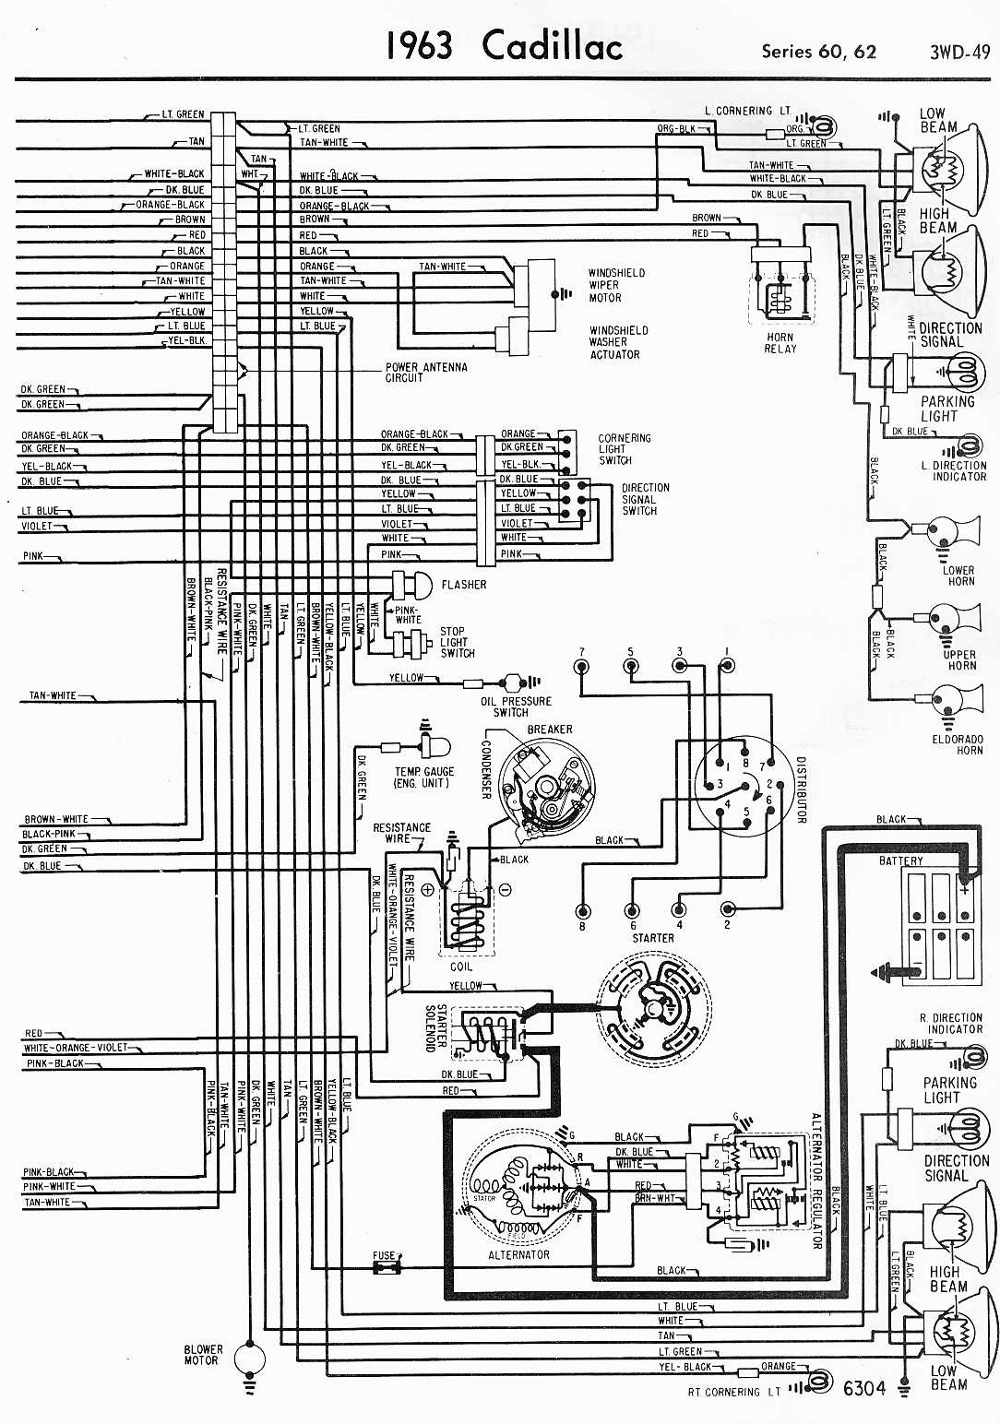 Wiring Diagrams schematics 1963 Cadillac Series 60 And 62